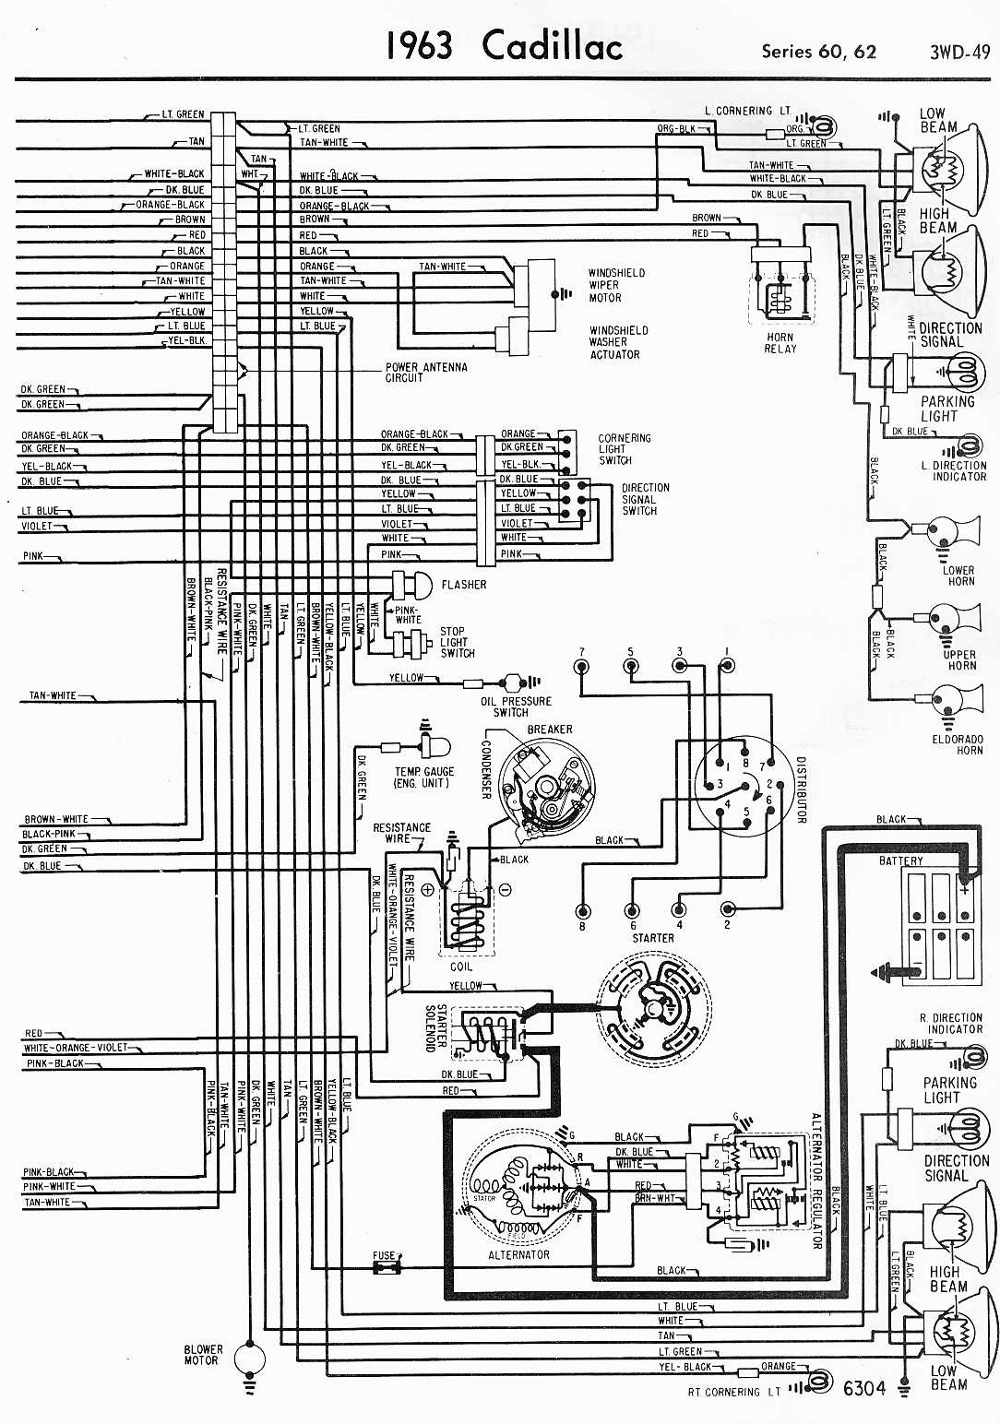 Wiring Diagrams schematics 1963 Cadillac Series 60 And 62